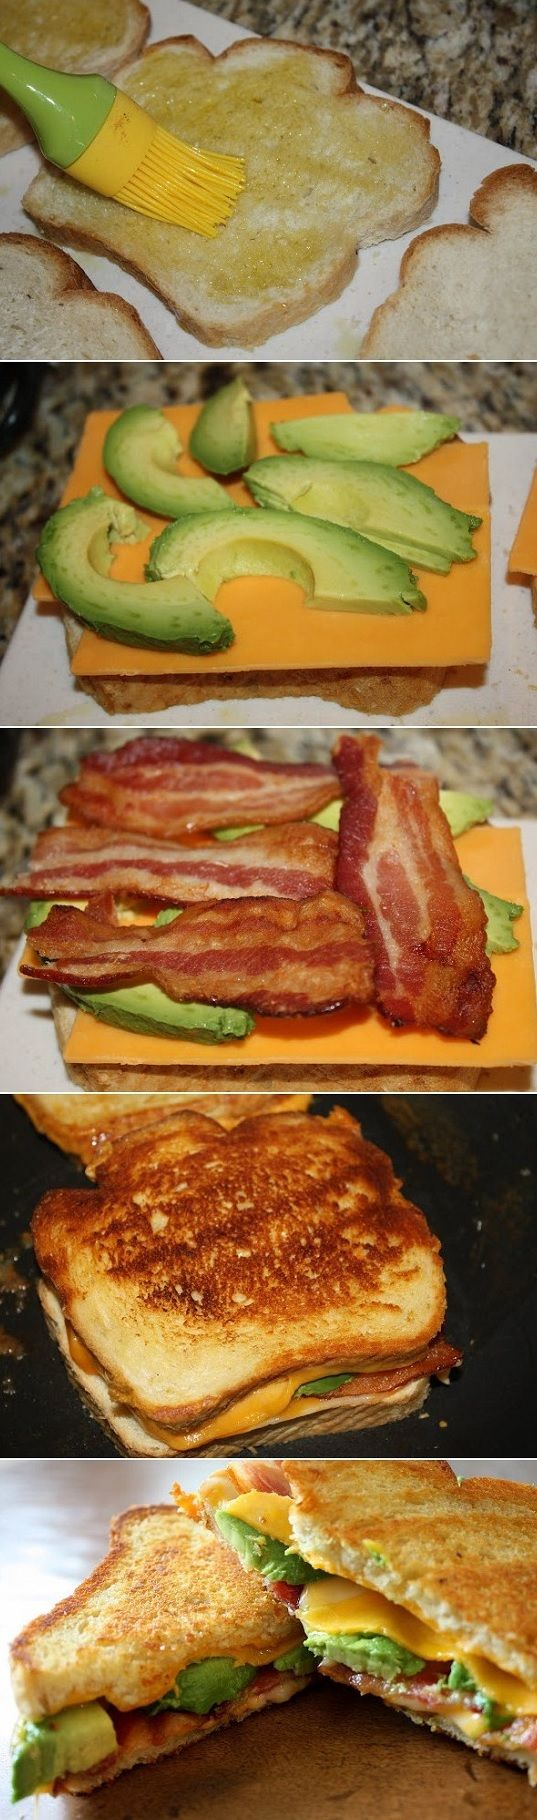 Bacon Avocado Grilled Cheese Ingredients 8 slices country-style sourdough bread, each 1/2 inch thick 4 tsp. olive oil 1/4 lb. cheddar cheese, thinly sliced 8 bacon slices, cooked 1/4 lb. Monterey j…